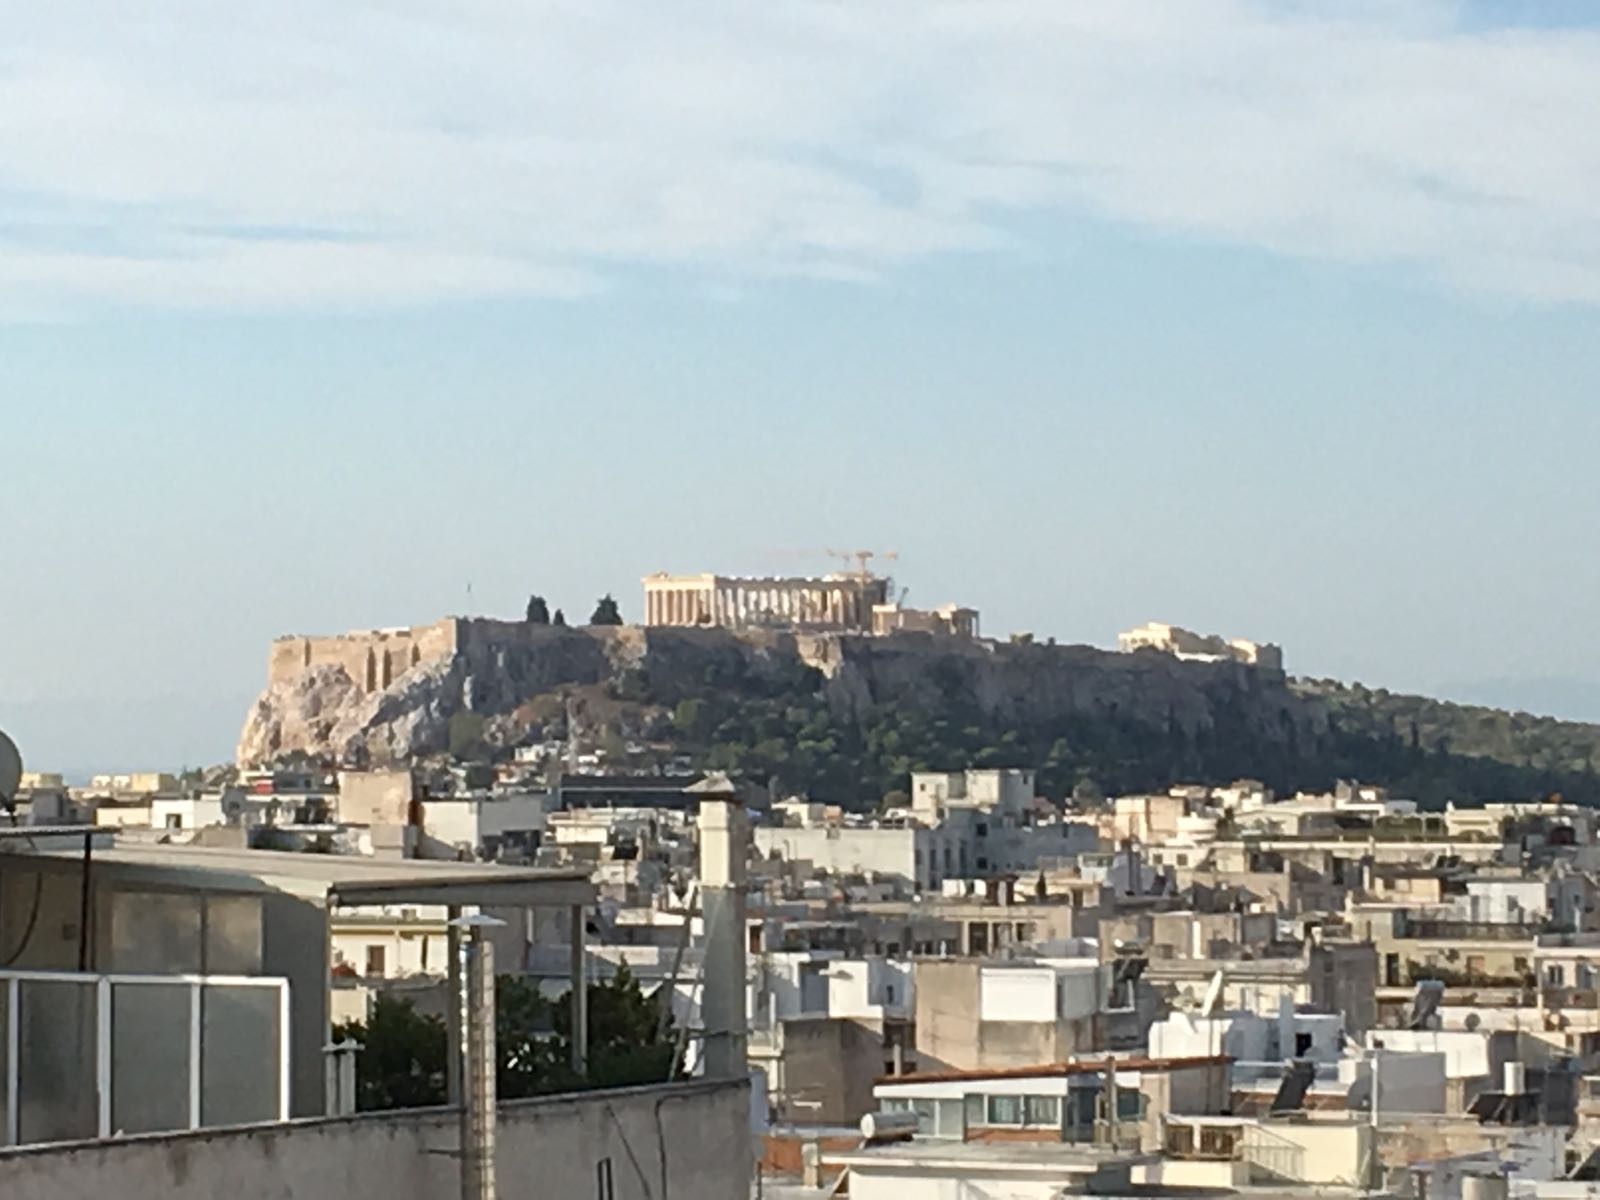 I dreamed of seeing Athens - one day with my own eyes ever since I first contemplated becoming an archaeologist.